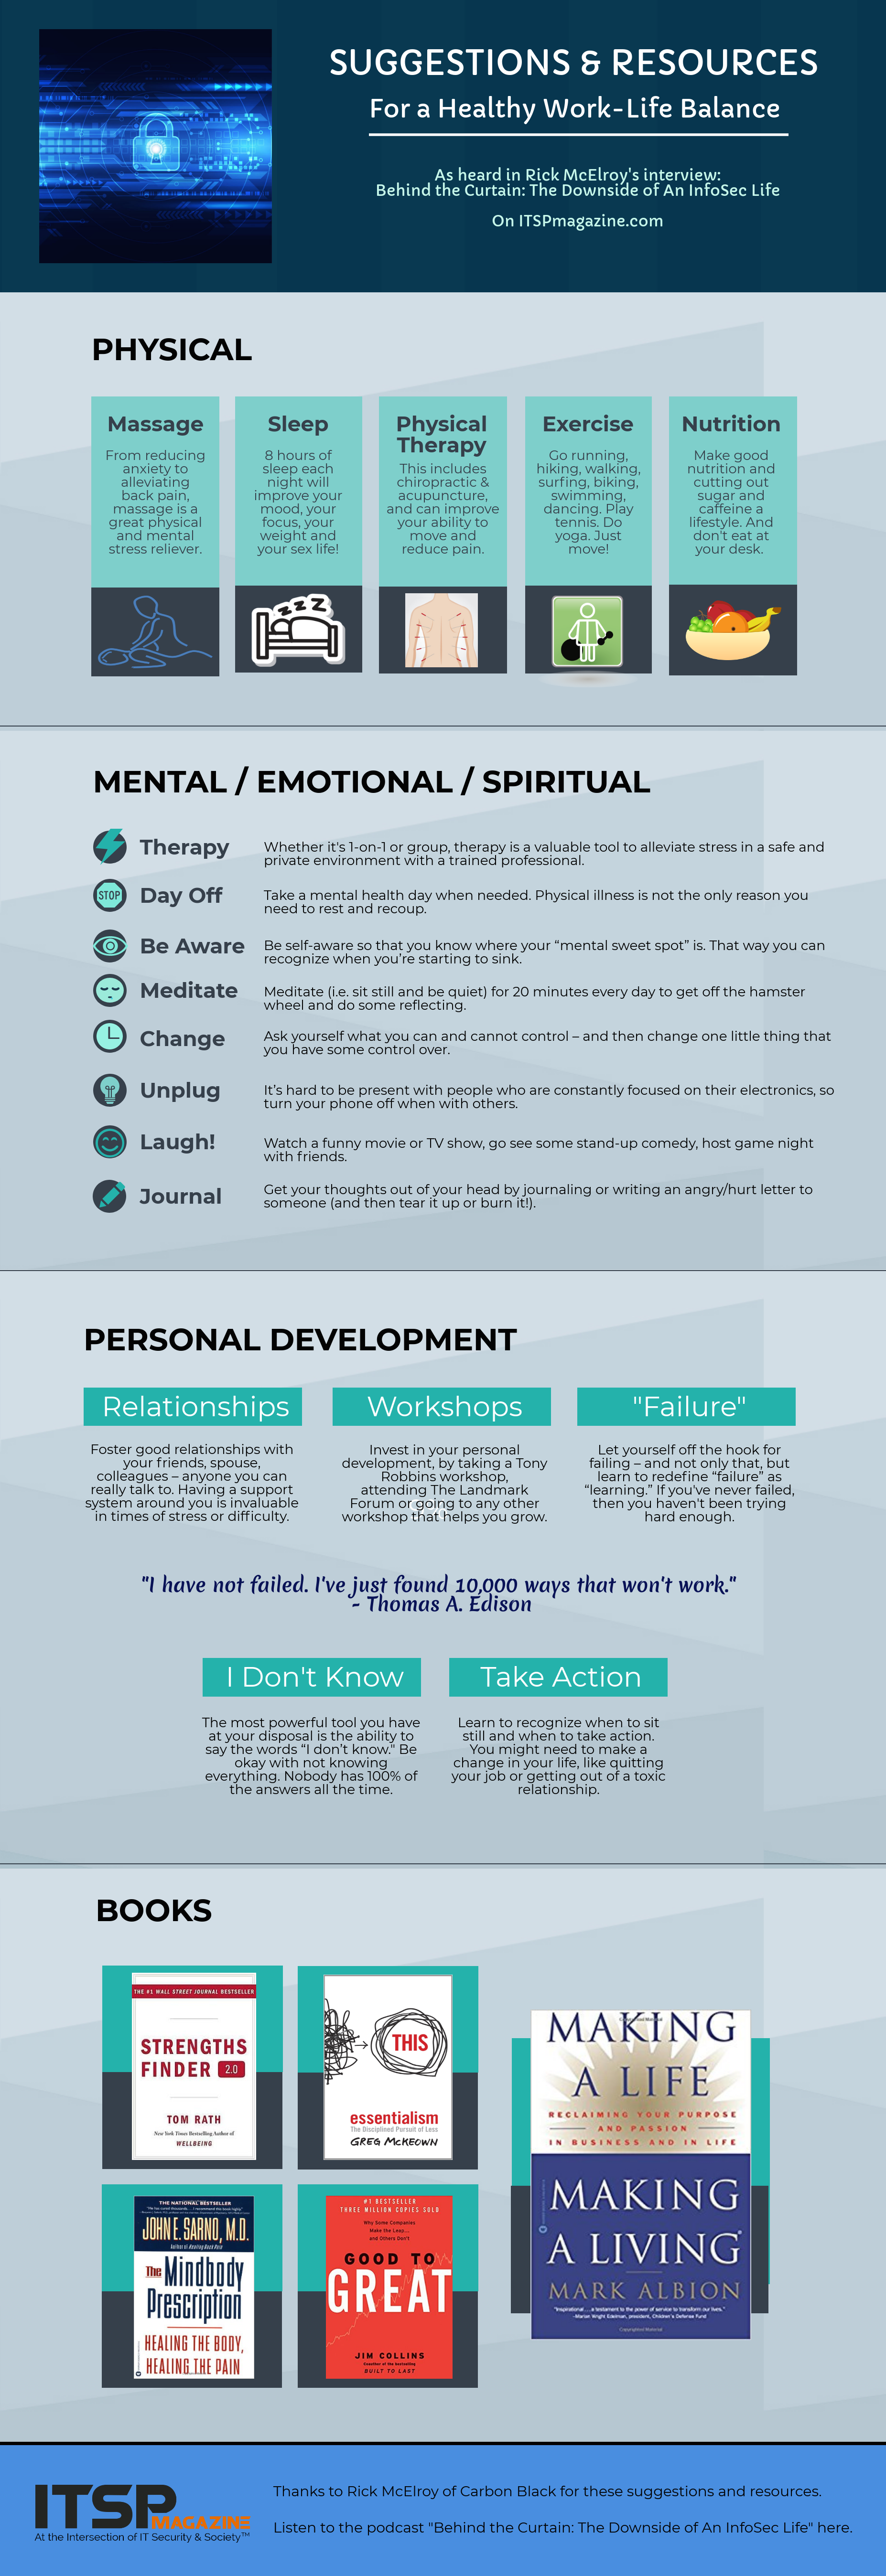 ITSPmagazine - Diverse IT podcast - Rick McElroy infographic.png